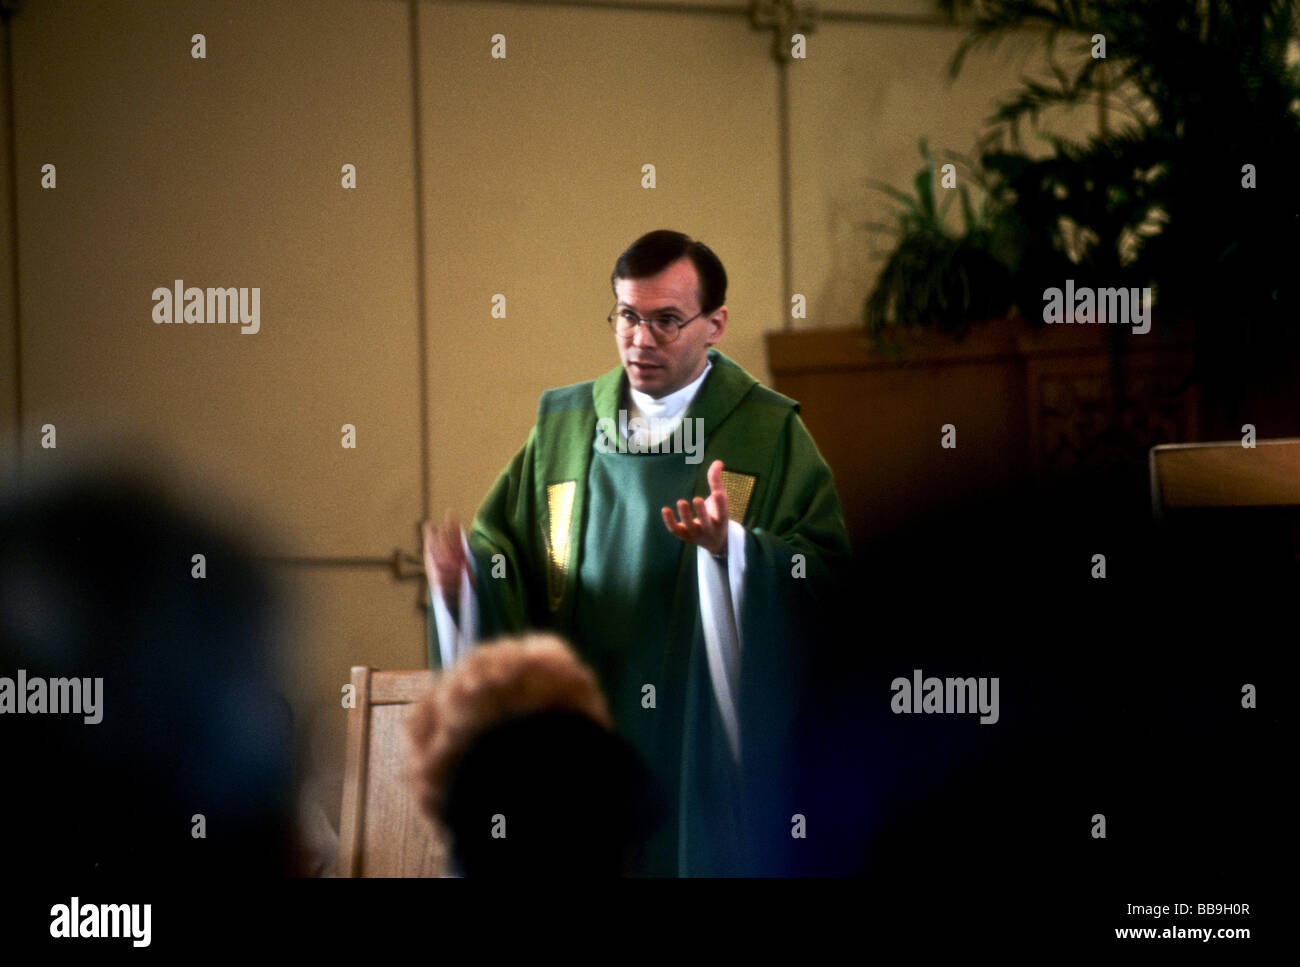 Homily Stock Photos & Homily Stock Images - Alamy